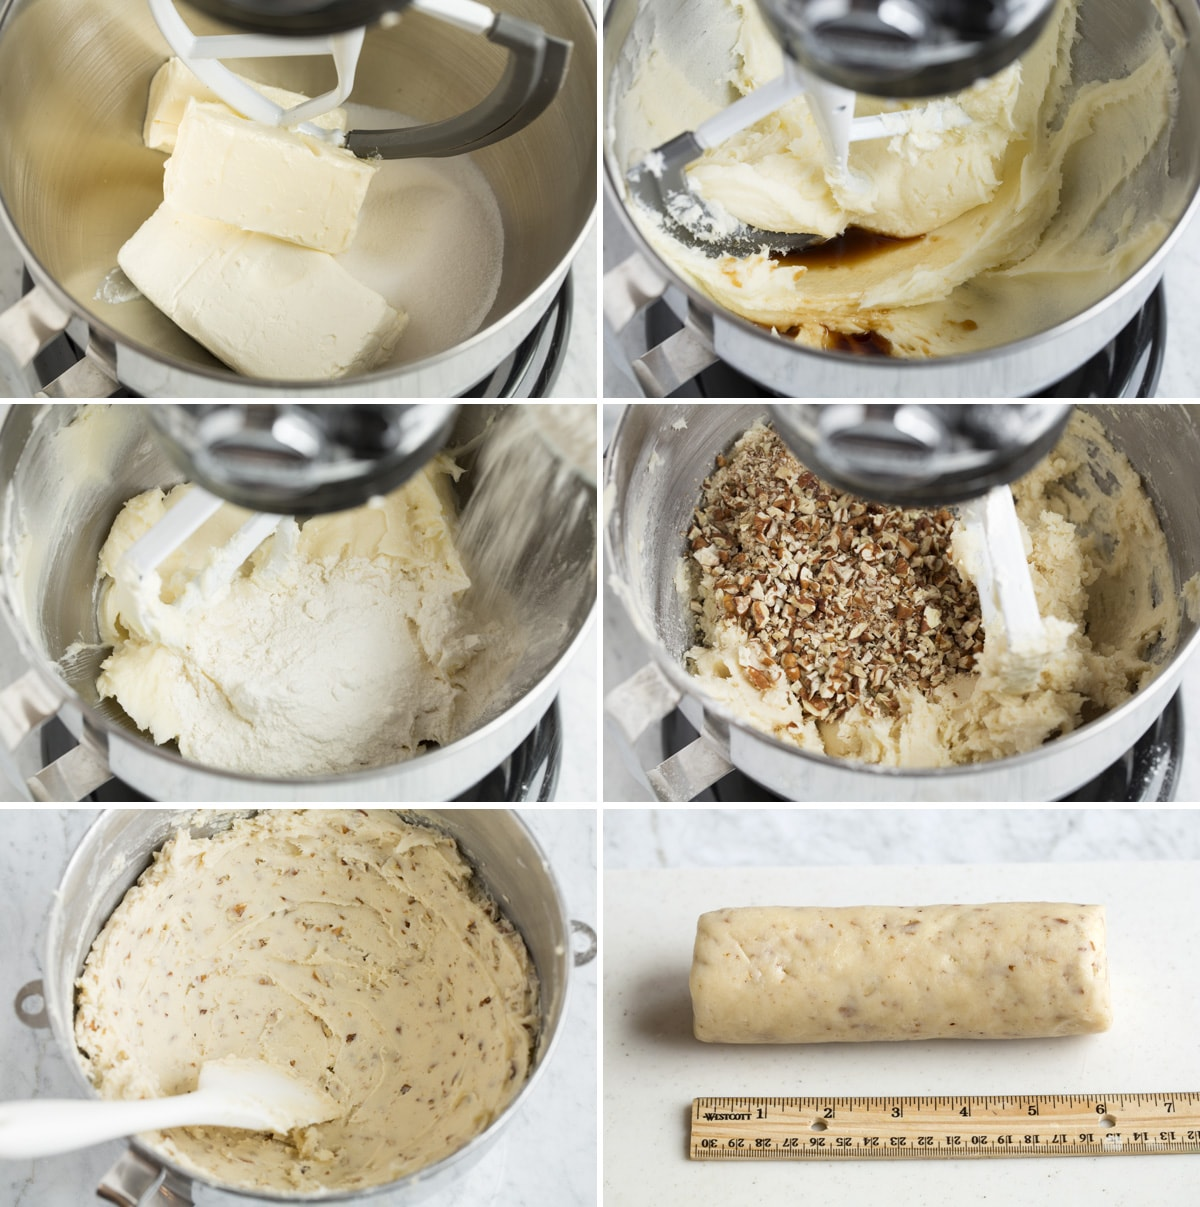 Image showing how to make cream cheese pecan cookie dough in an electric stand mixer bowl.